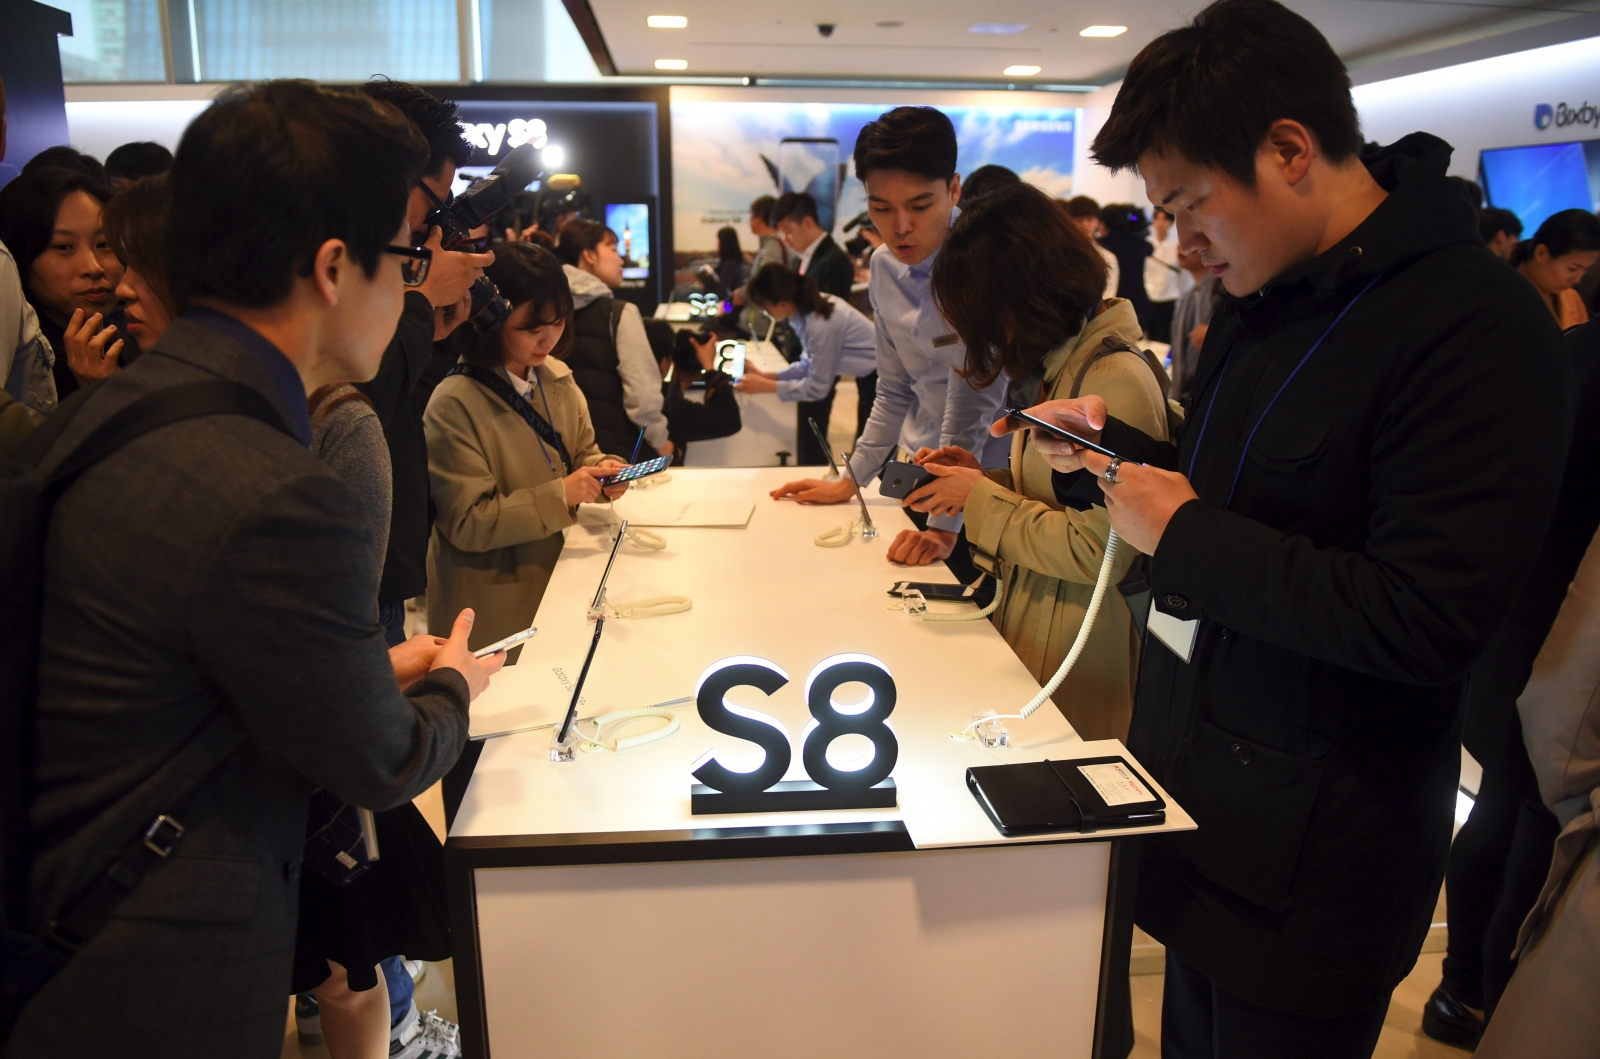 Galaxy S8, S8+ heavy demand in SouthKorea